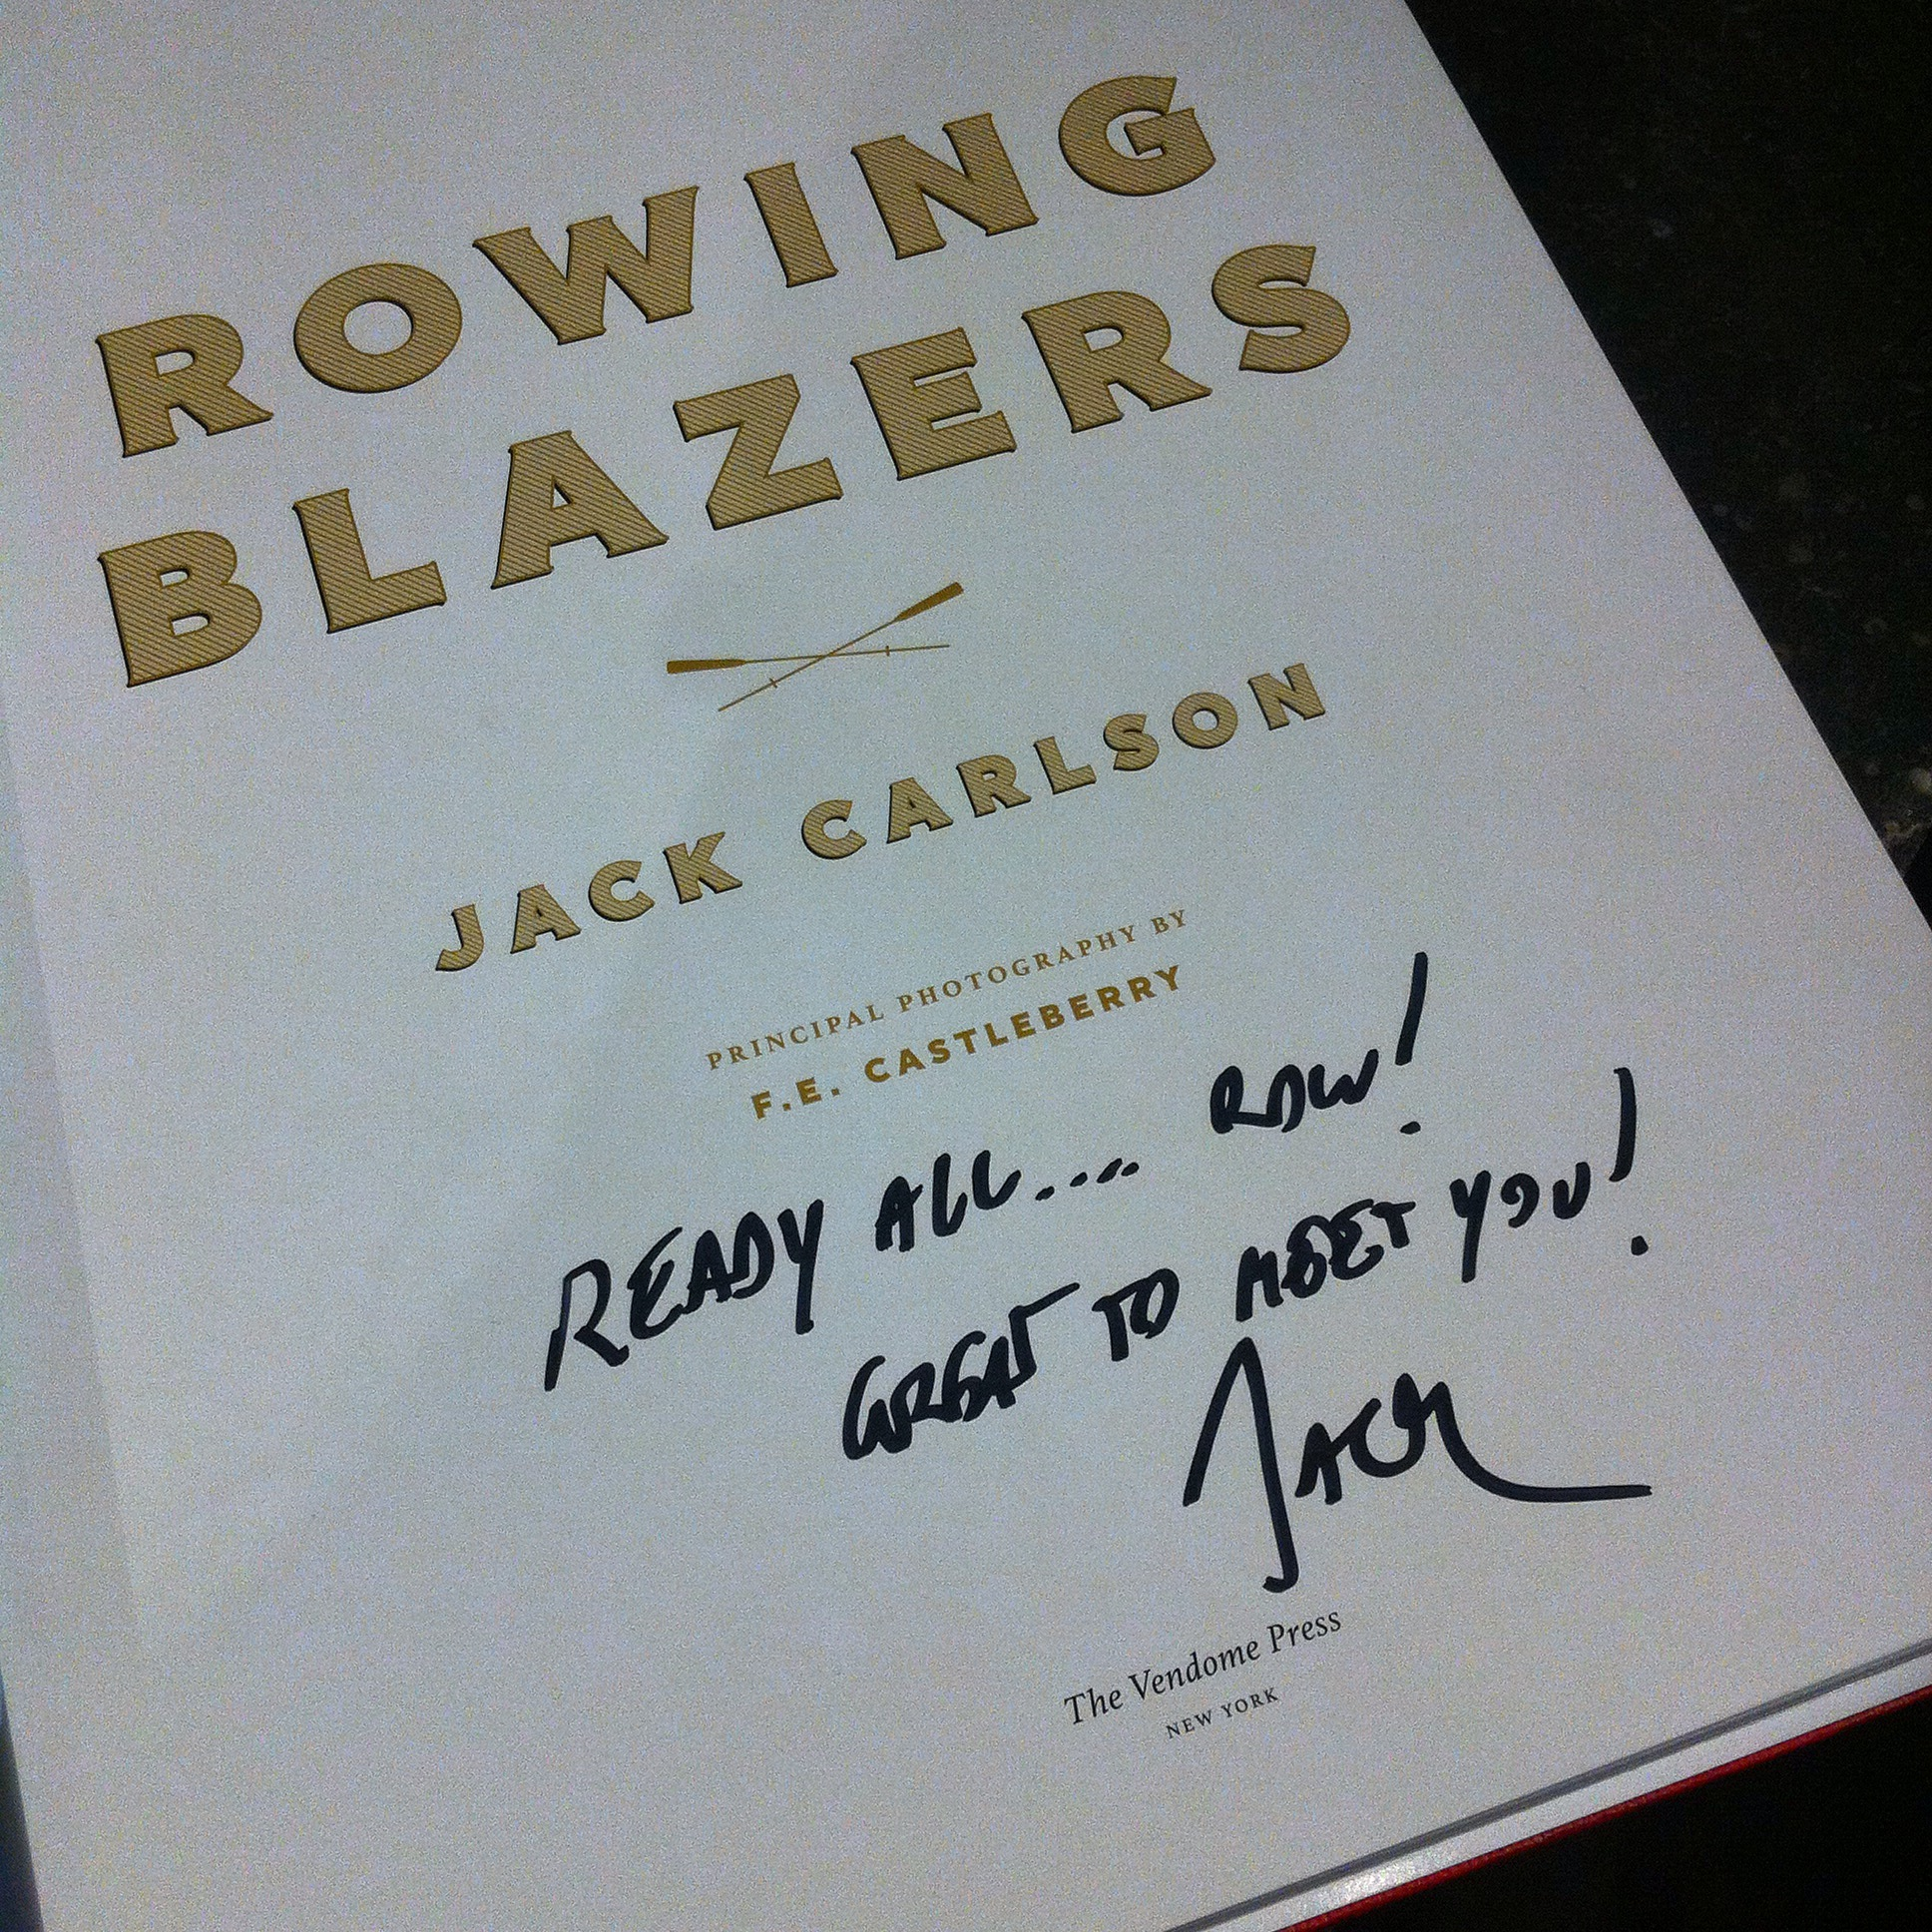 rowing blazers, ready all row, rowing, jack carlson